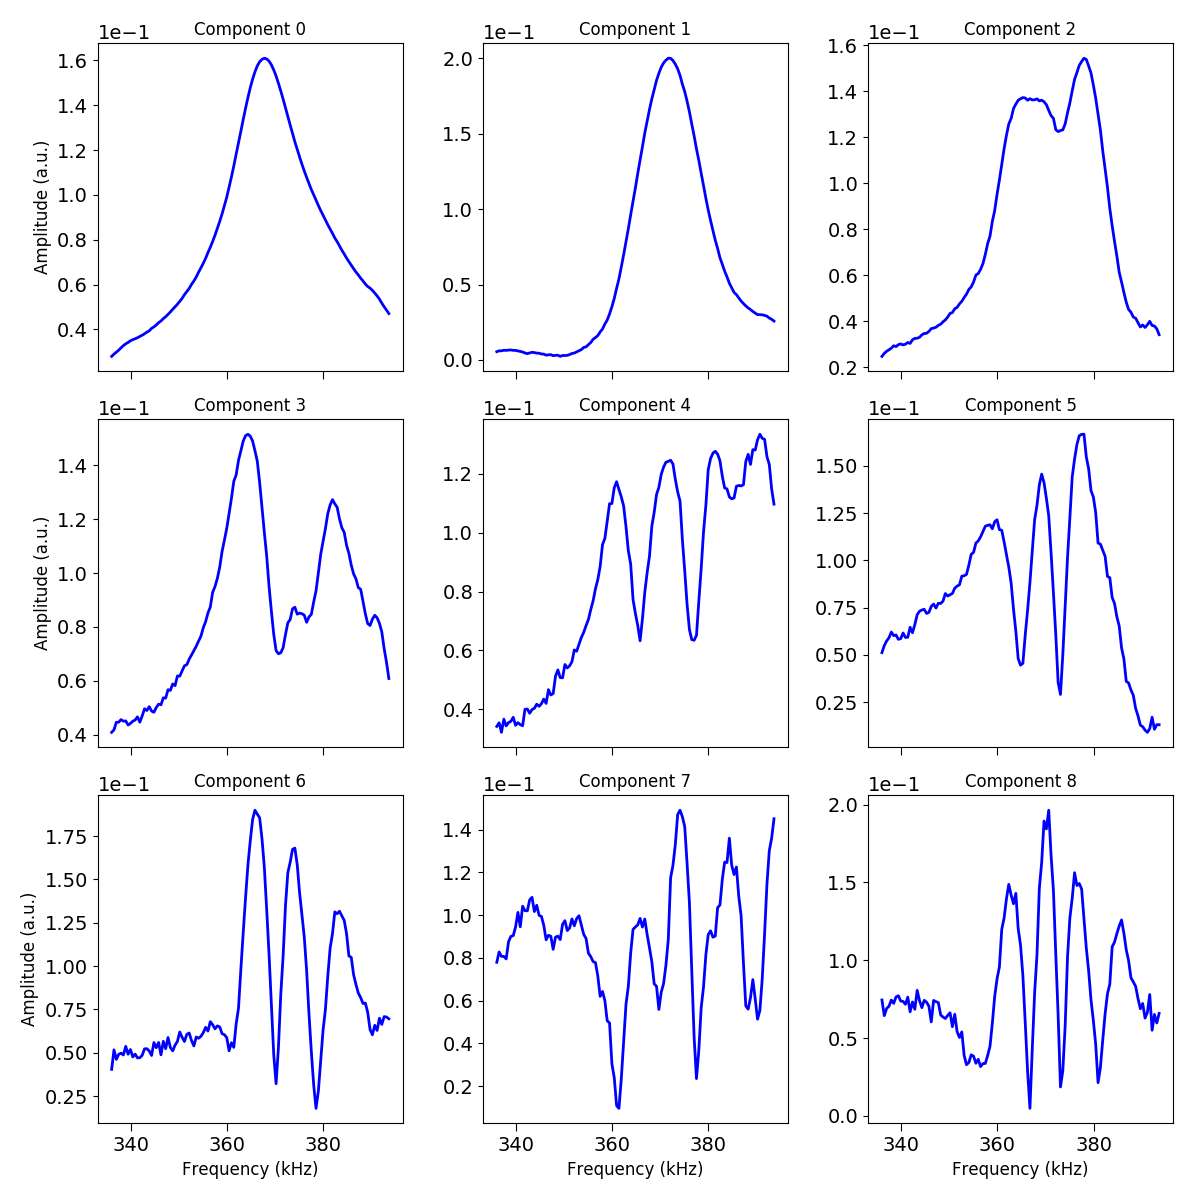 docs/auto_examples/data_analysis/images/sphx_glr_plot_spectral_unmixing_003.png